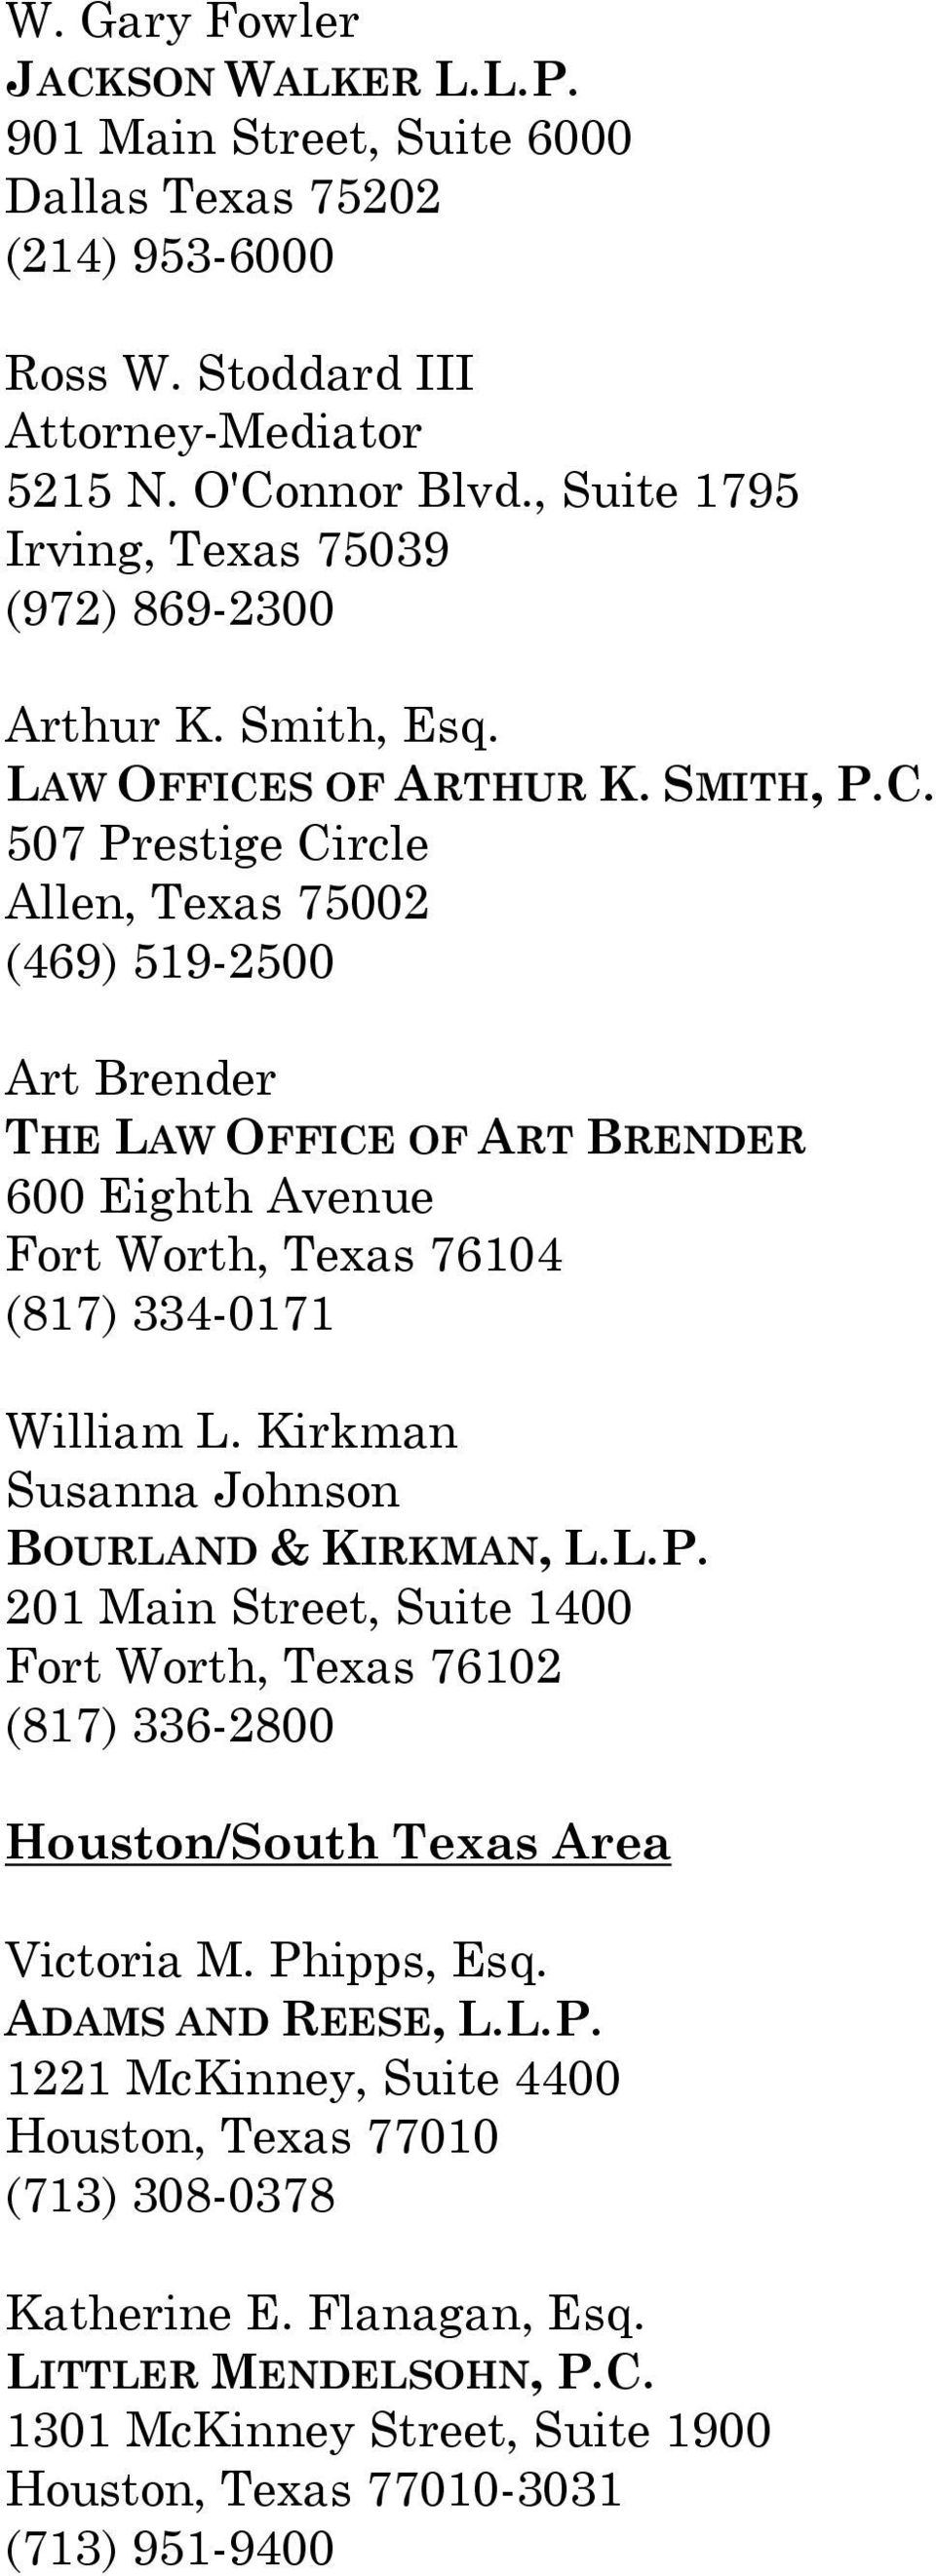 S OF ARTHUR K. SMITH, P.C. 507 Prestige Circle Allen, Texas 75002 (469) 519-2500 Art Brender THE LAW OFFICE OF ART BRENDER 600 Eighth Avenue Fort Worth, Texas 76104 (817) 334-0171 William L.